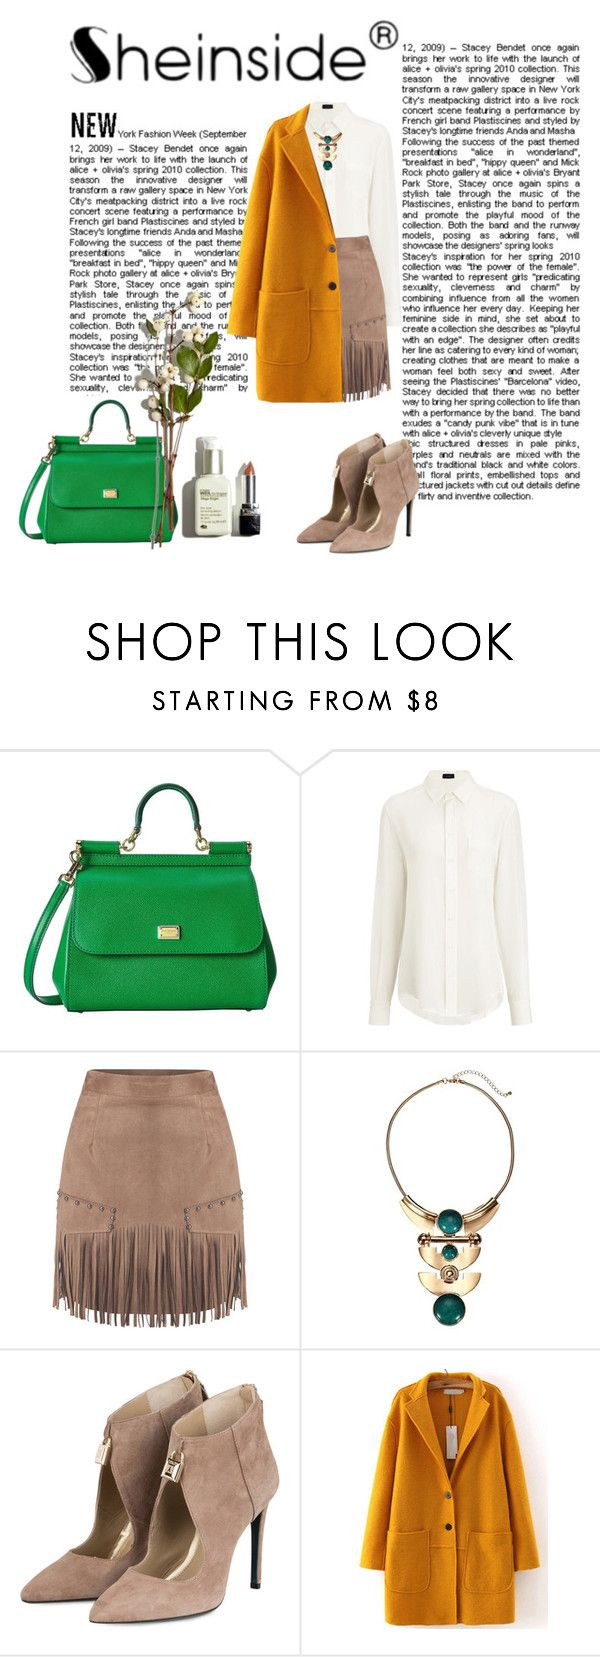 Camel slim skirt/Shein contest with prize! by adriana-claudia on Polyvore featuring Joseph and Dolce&Gabbana